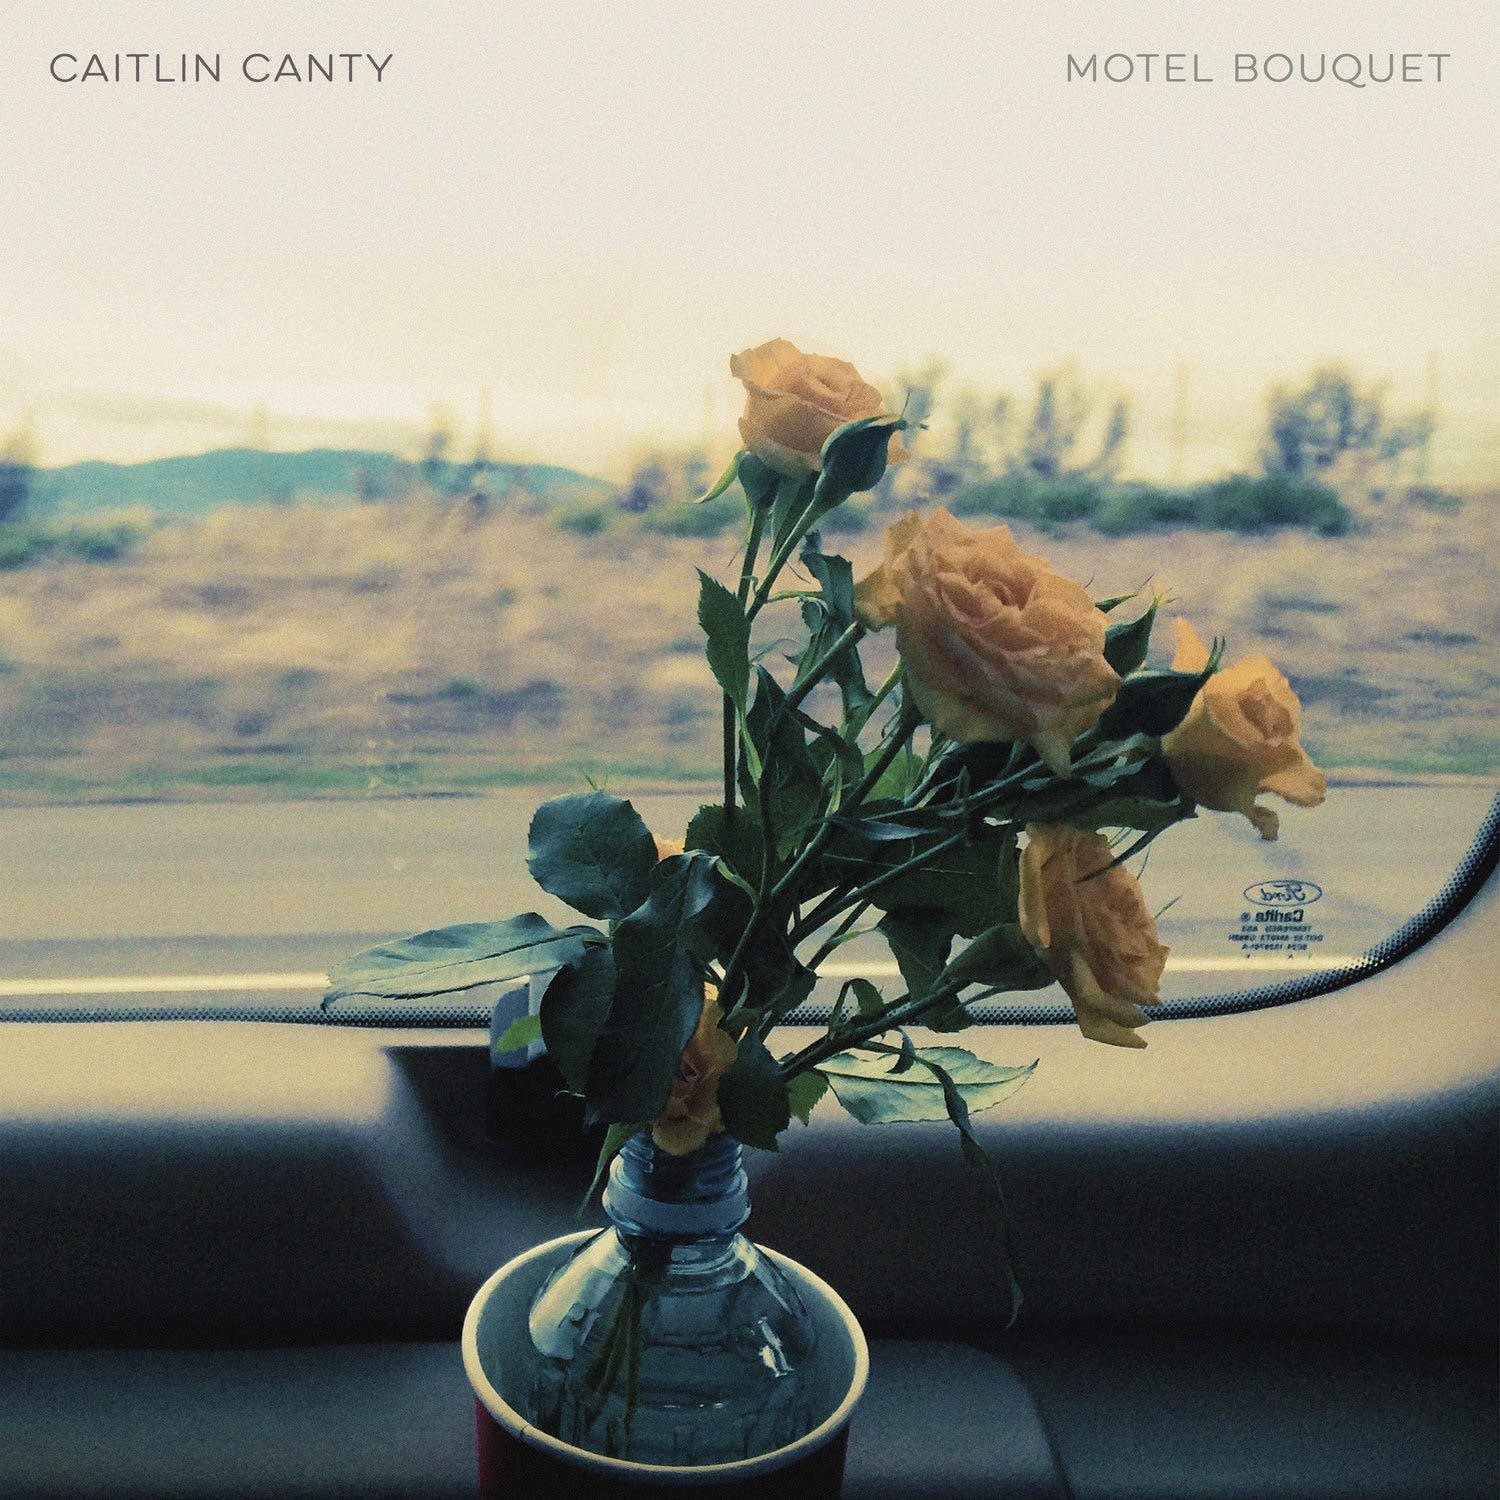 Caitlin Canty, 'Motel Bouquet'